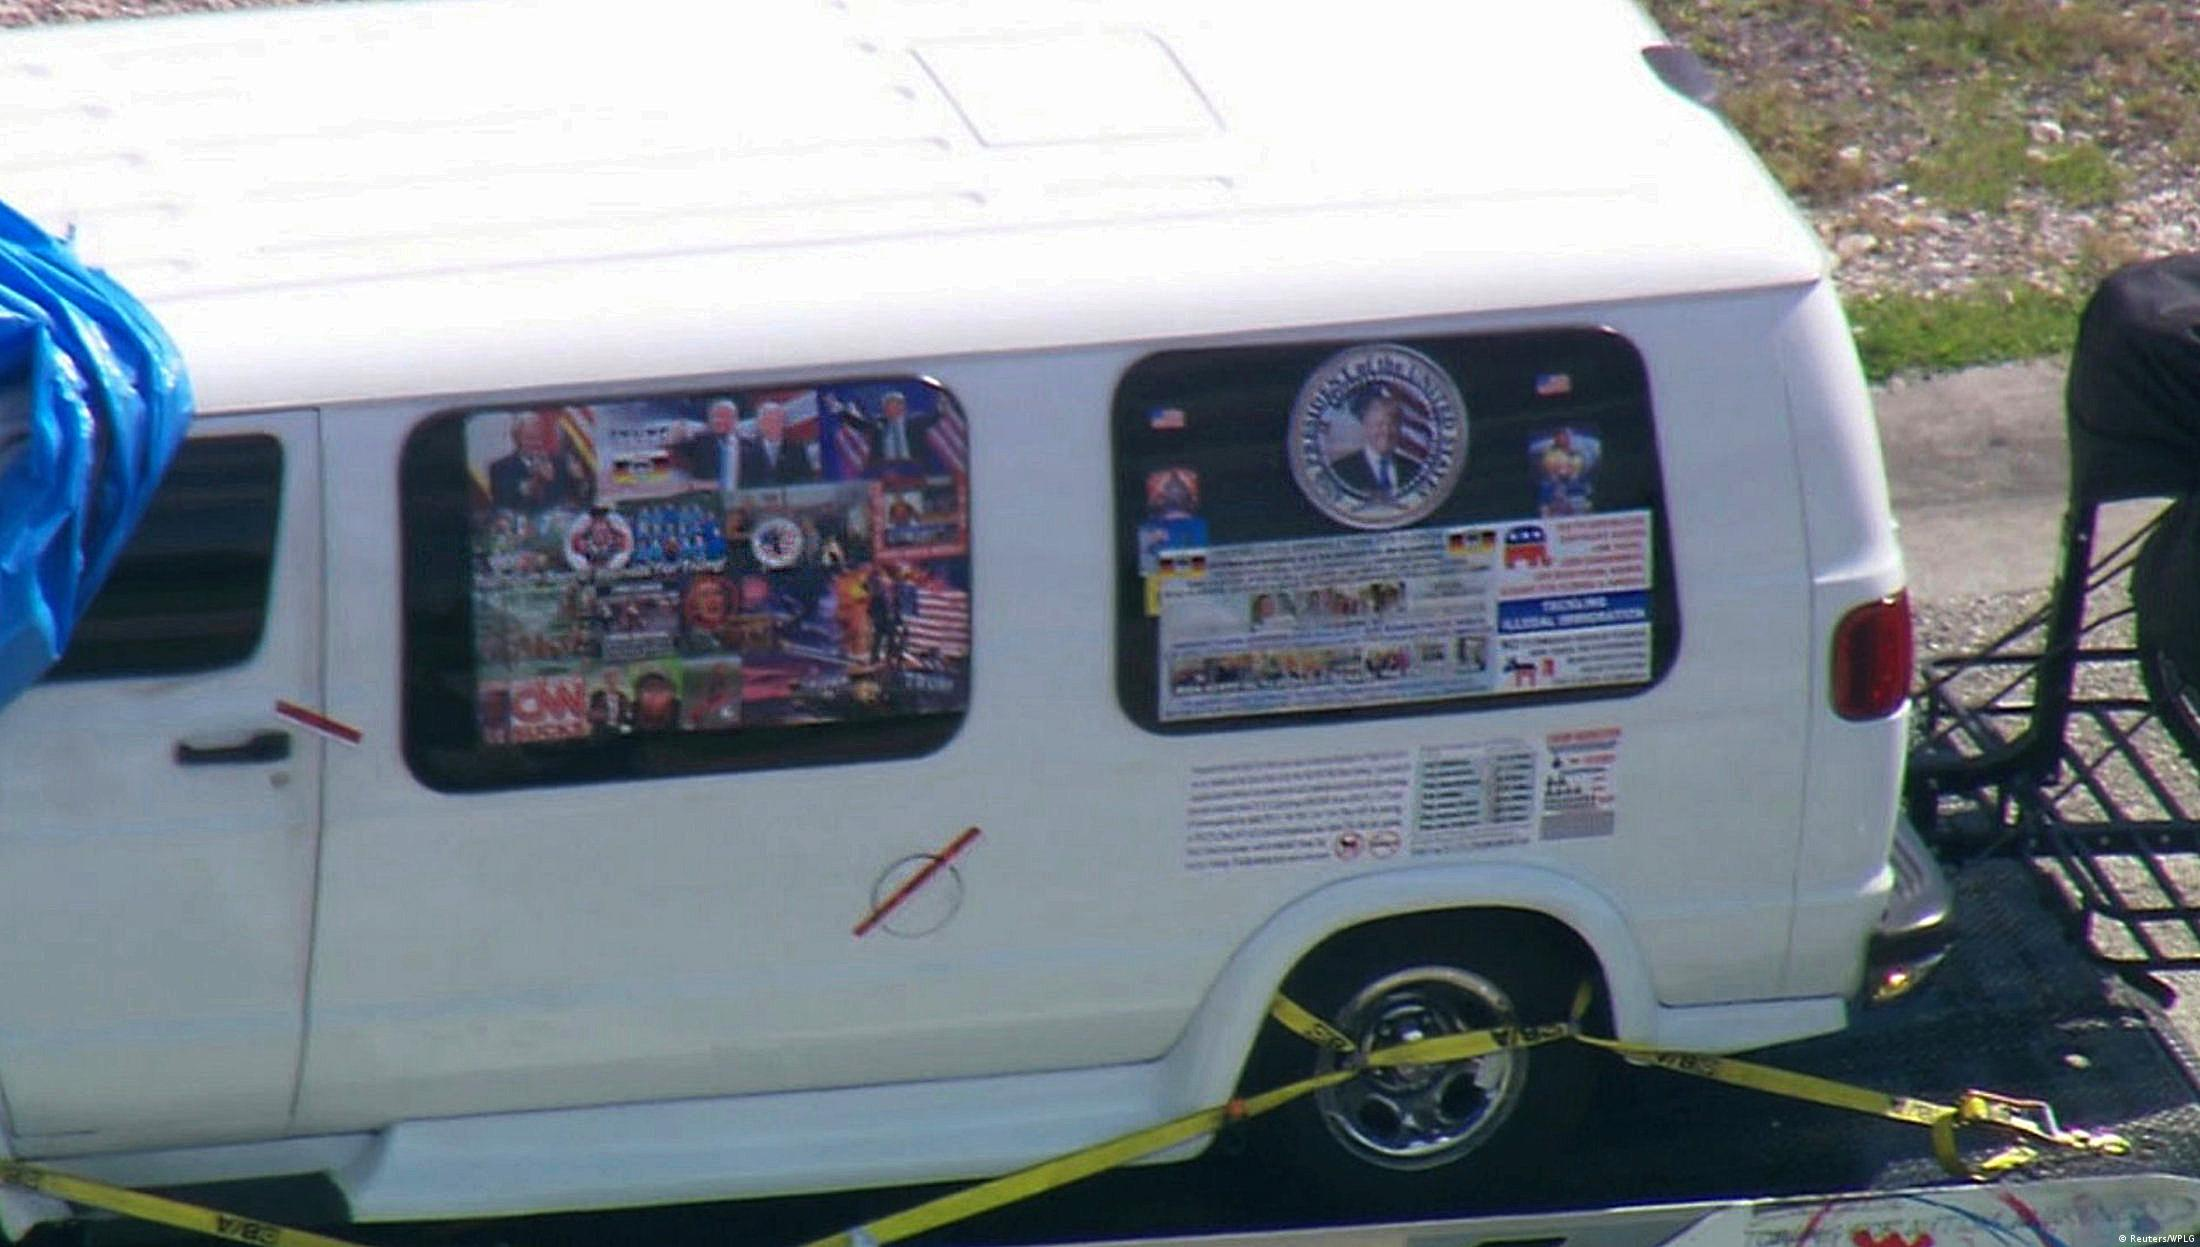 A van thought to belong to the suspect being impounded in Florida(Reuters/WPLG)